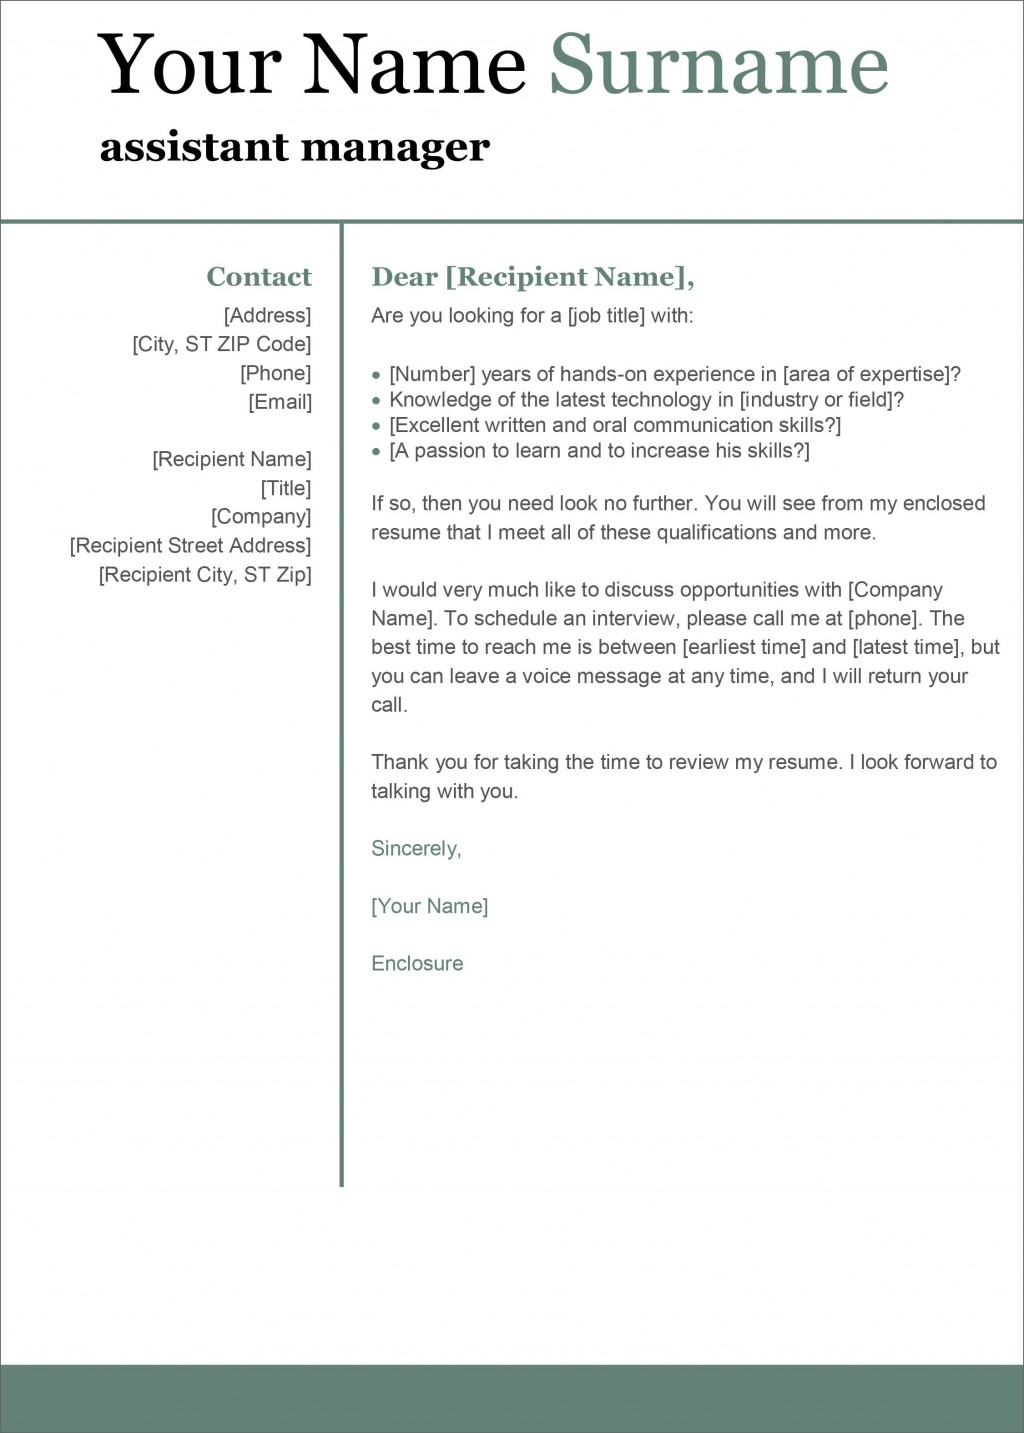 005 Phenomenal Microsoft Word Letter Template High Def  Free Download M Of ResignationLarge